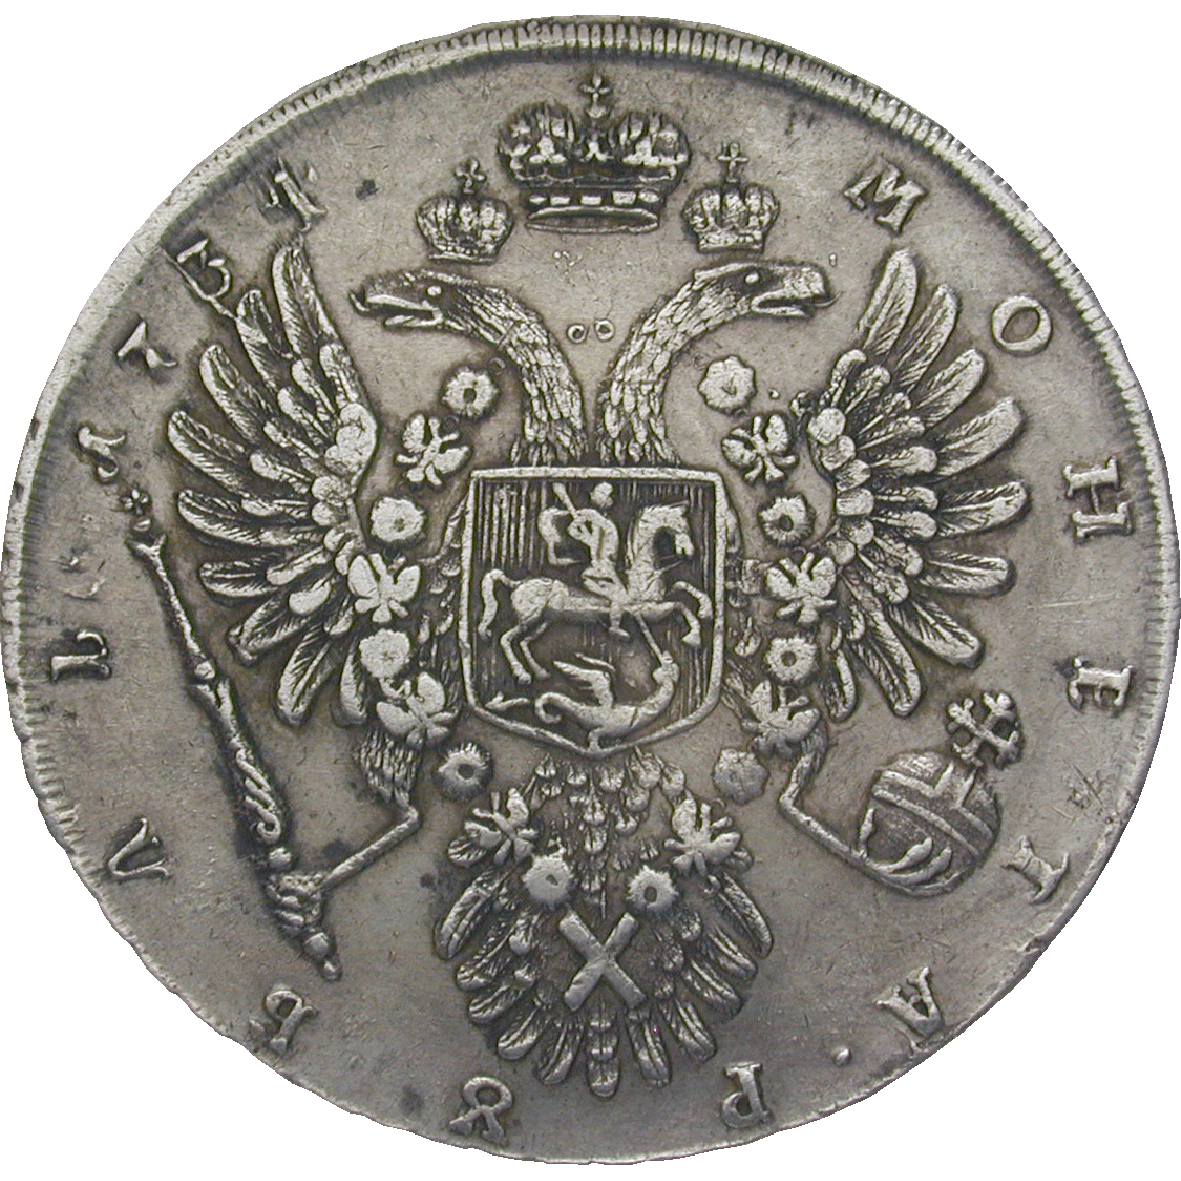 Russian Empire, Anna Ivanovna, Ruble 1731 (reverse)